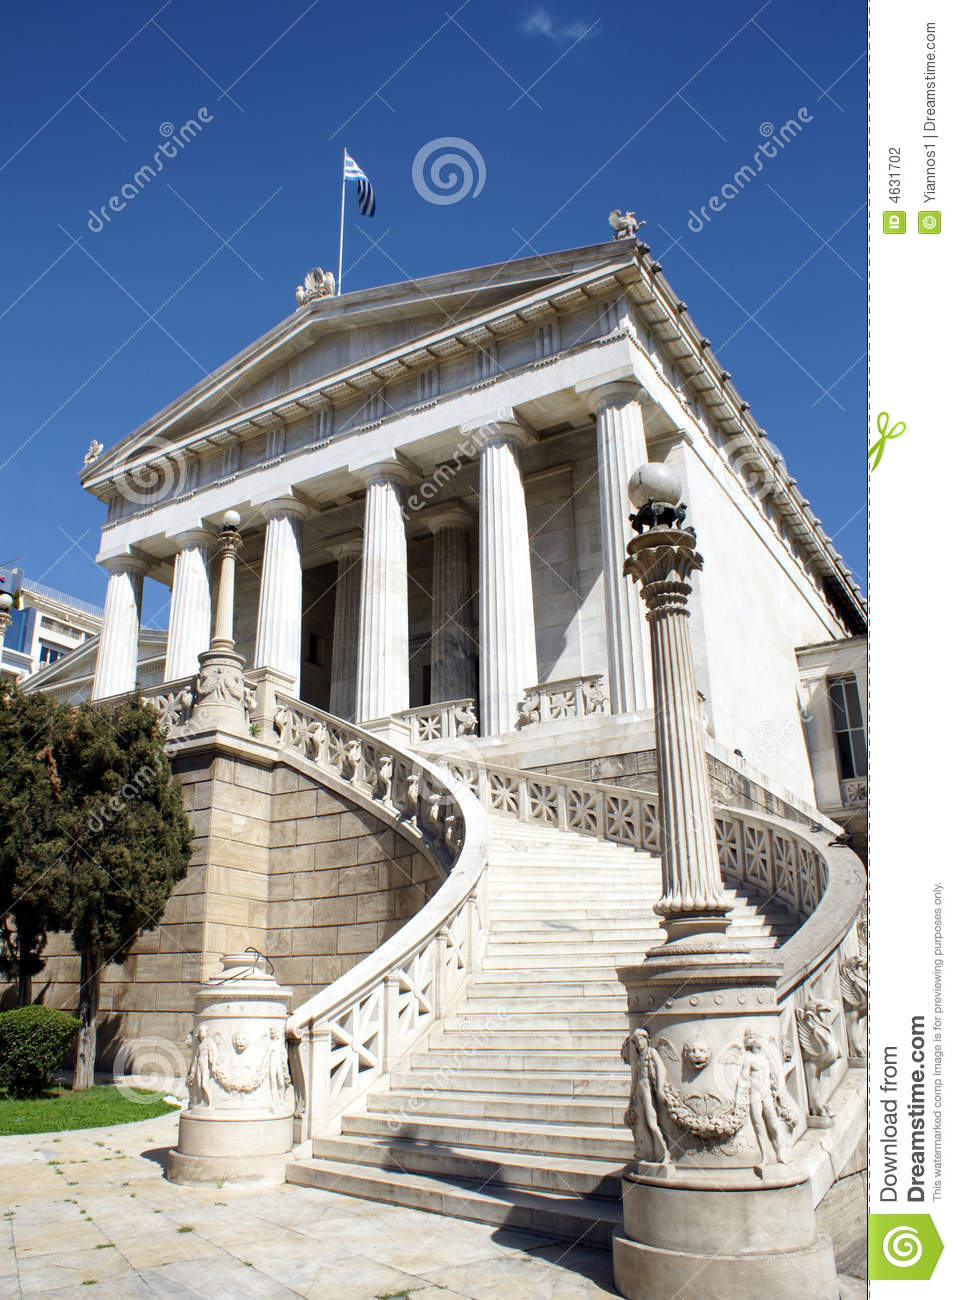 Ancient Greek Building In Athens Stock Photo - Image: 4631702 Greek Columns Vector